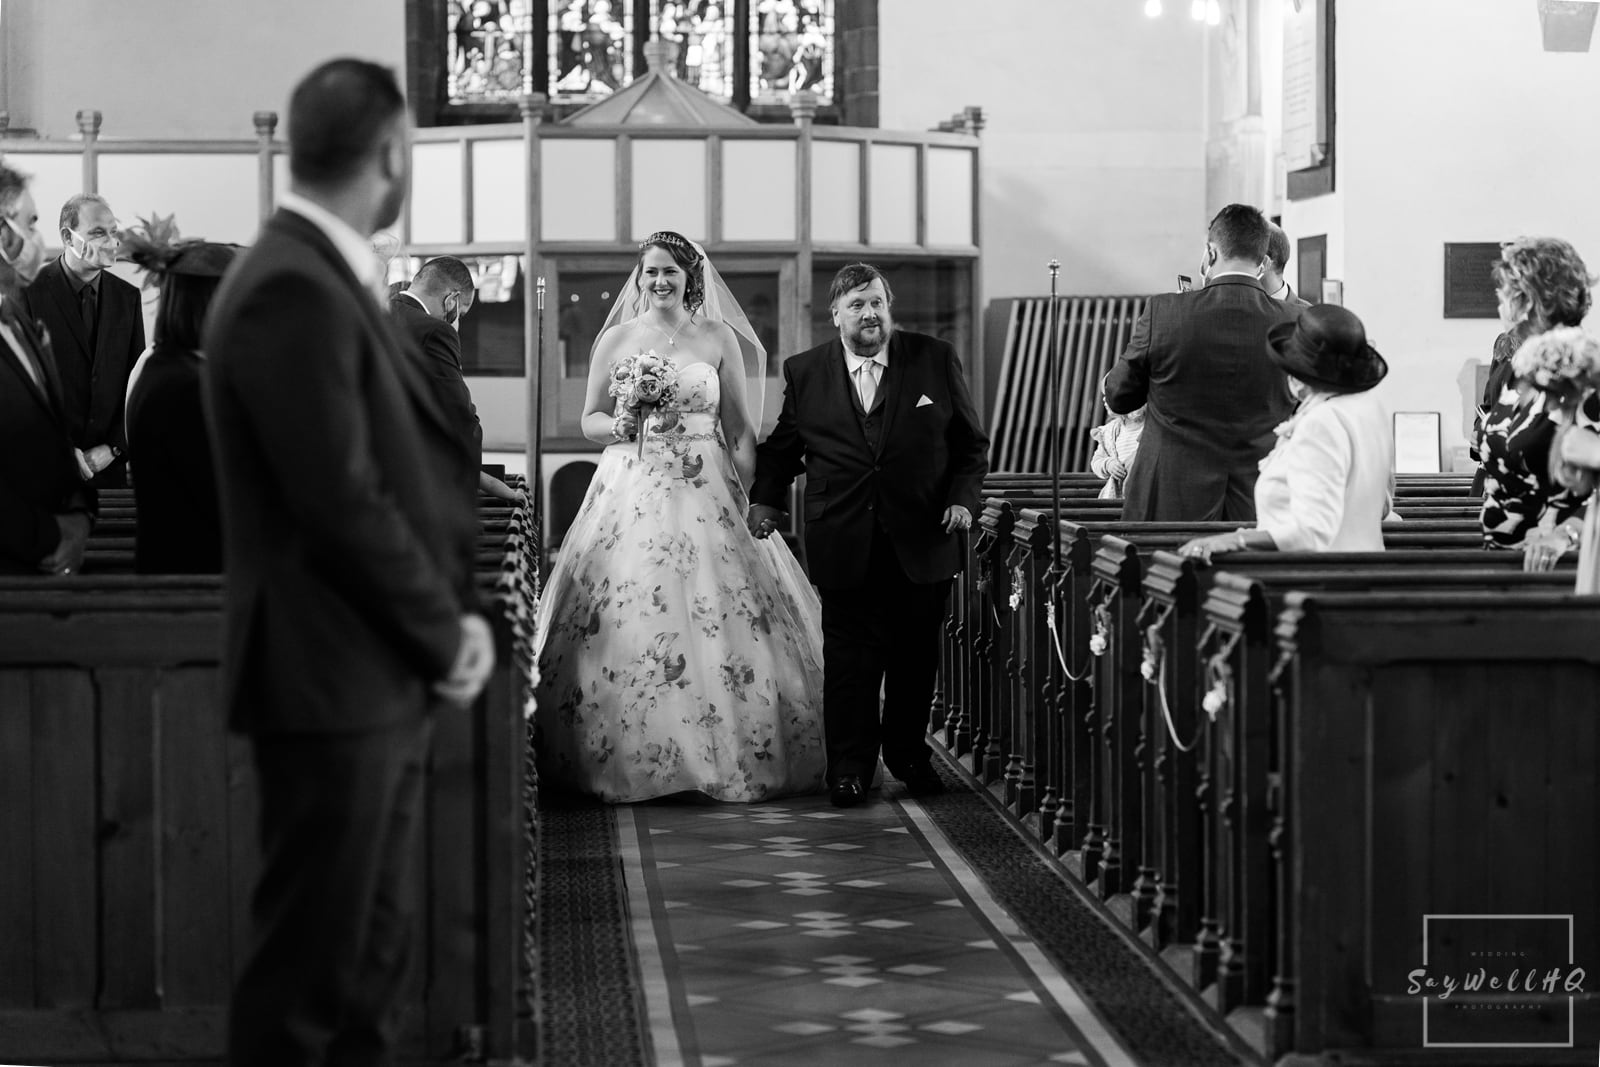 Lincoln Wedding Photography + Spilsby Church Wedding Photographer + Bride and her Father walking down the wedding aisle